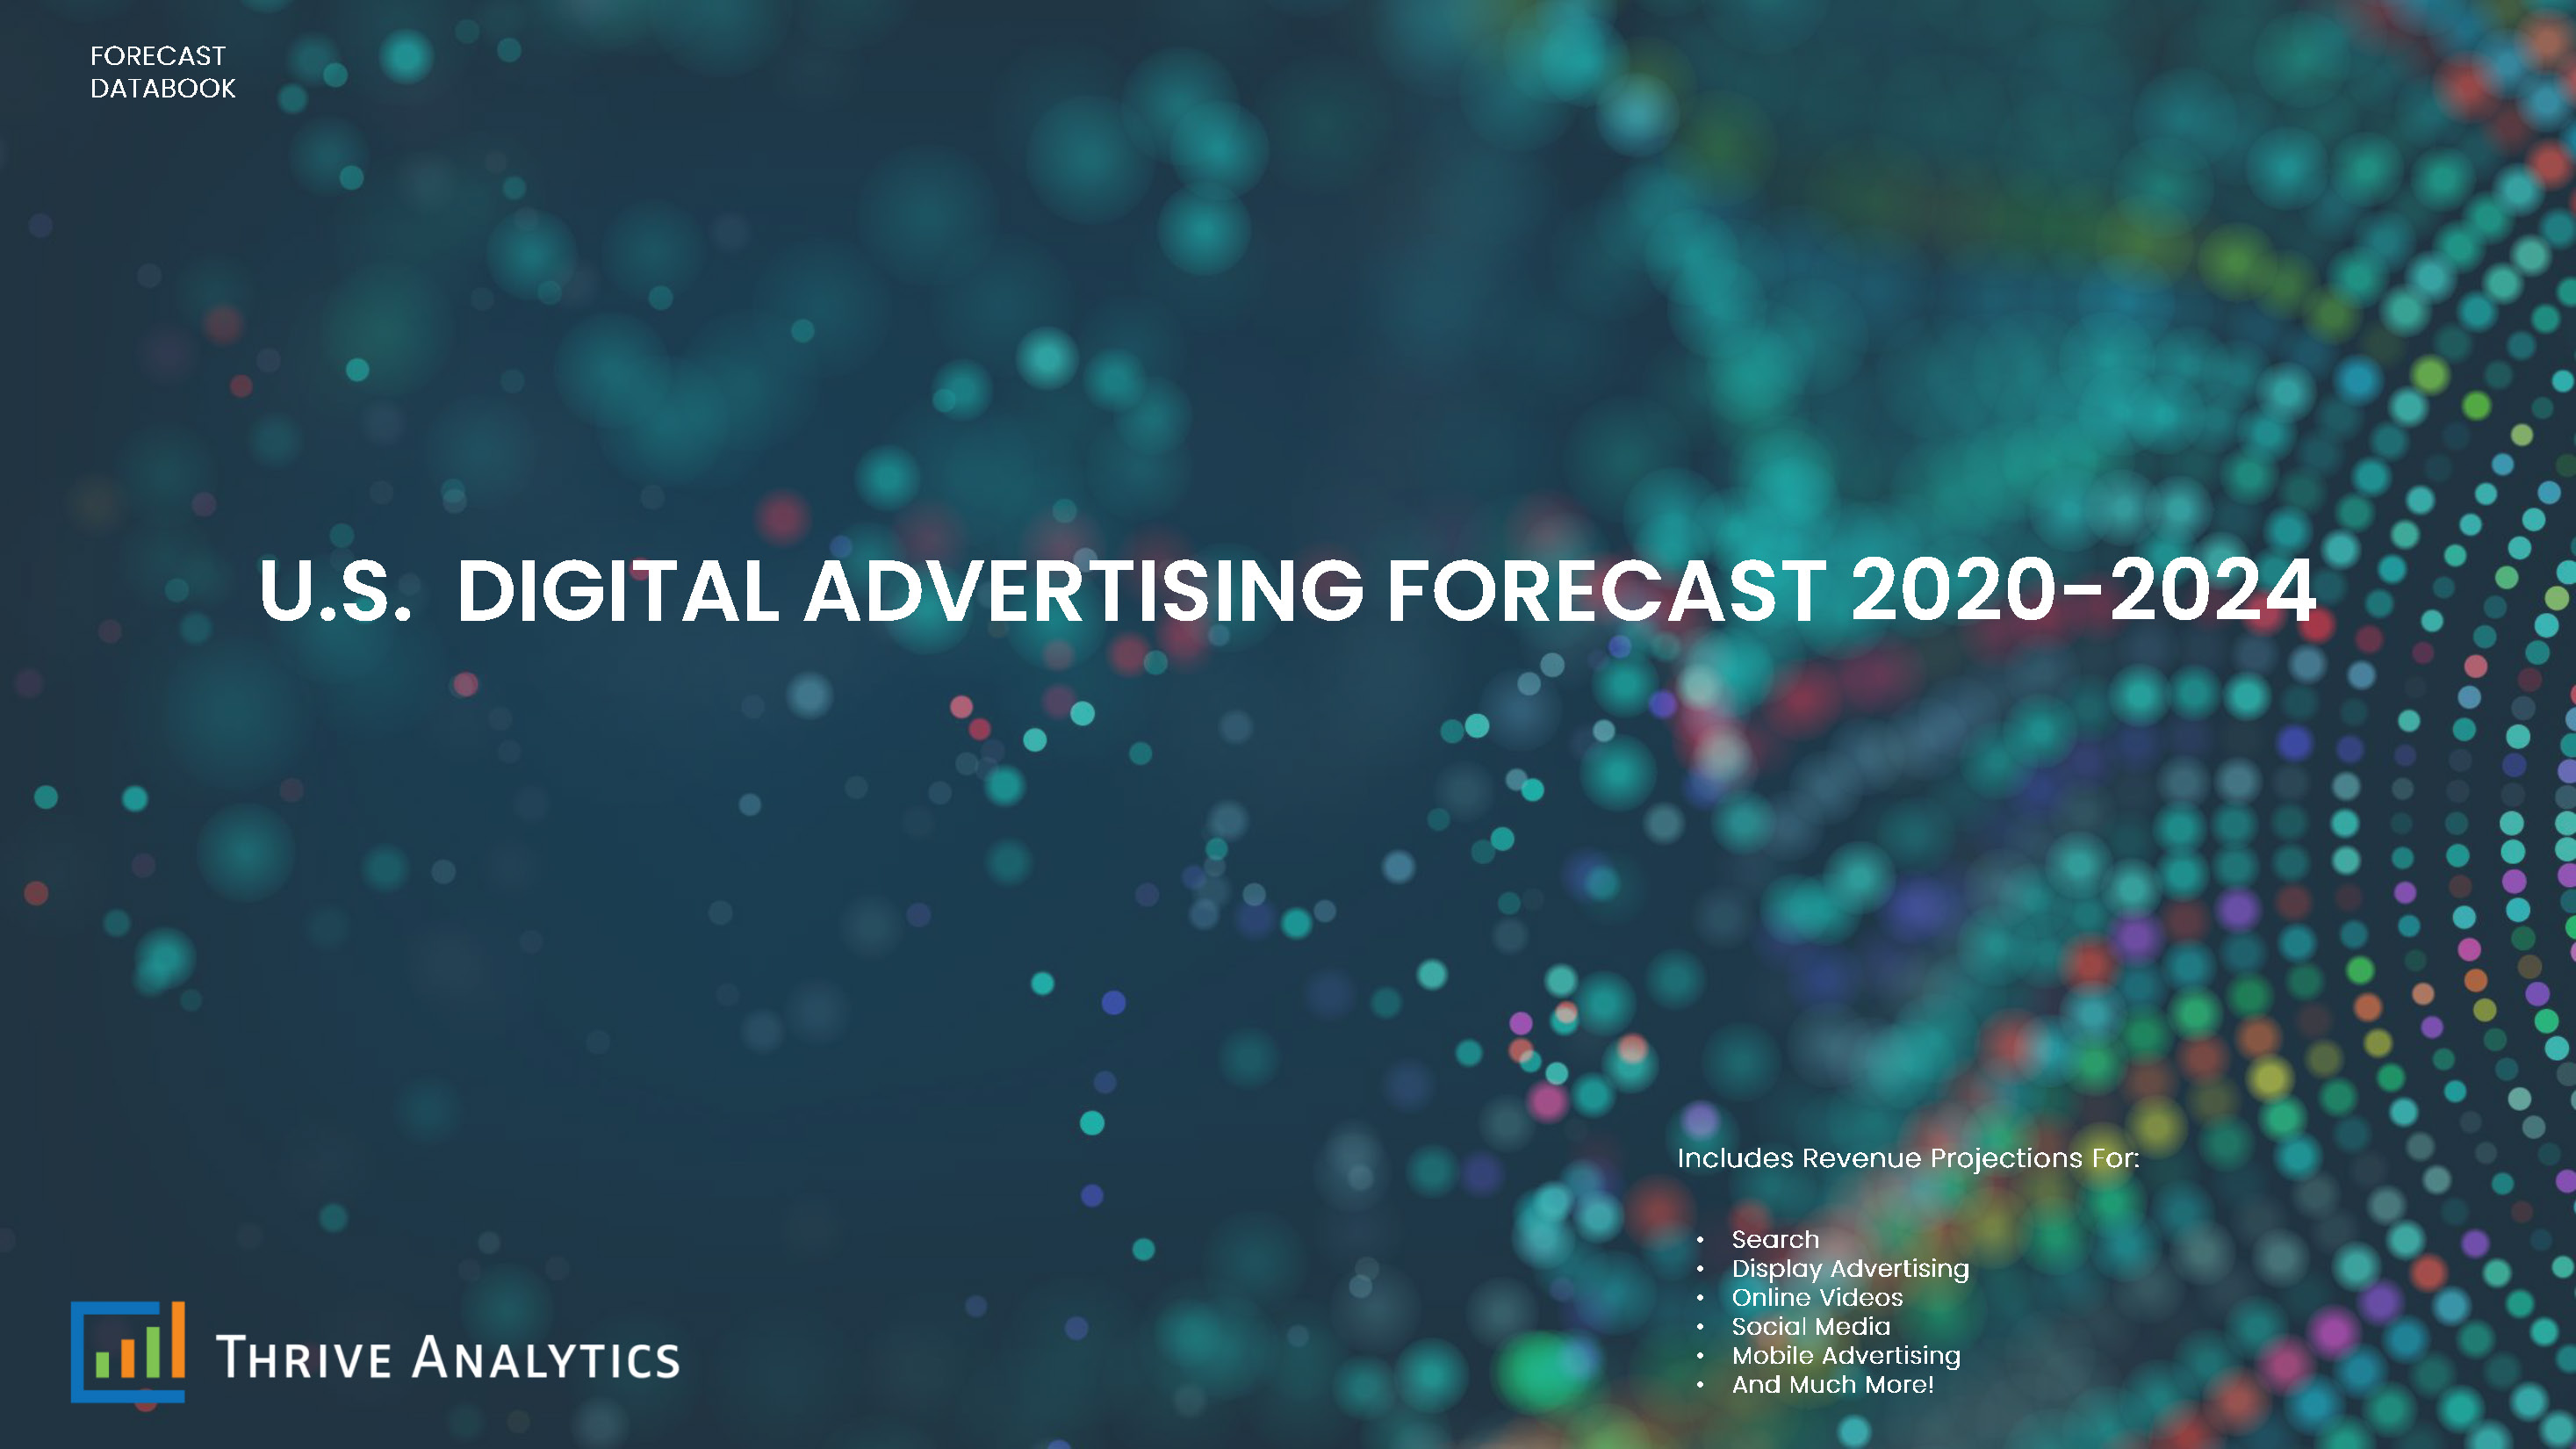 U.S. Digital Advertising Forecast 2020-2024